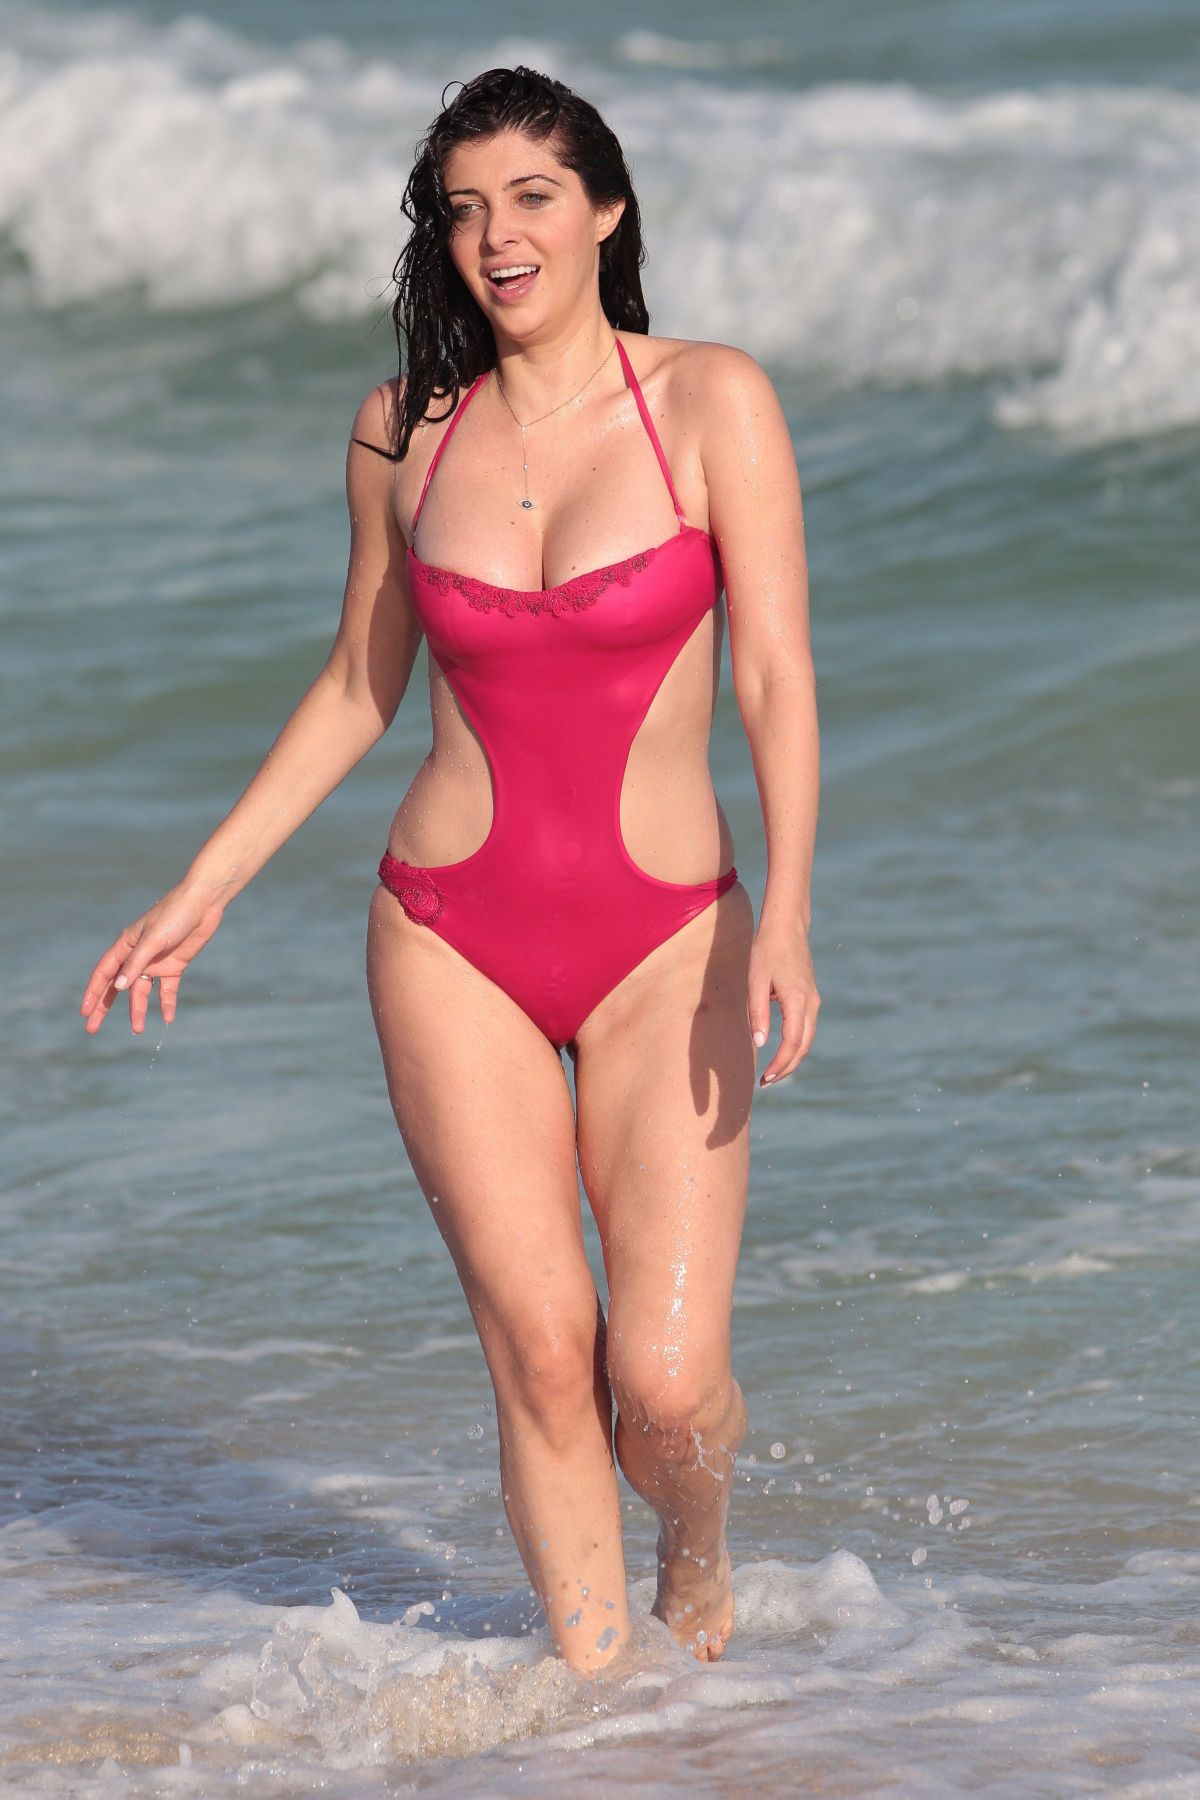 BRITTNY GASTINEAU in Swimsuit at a Beach in Miami 12/28/2015